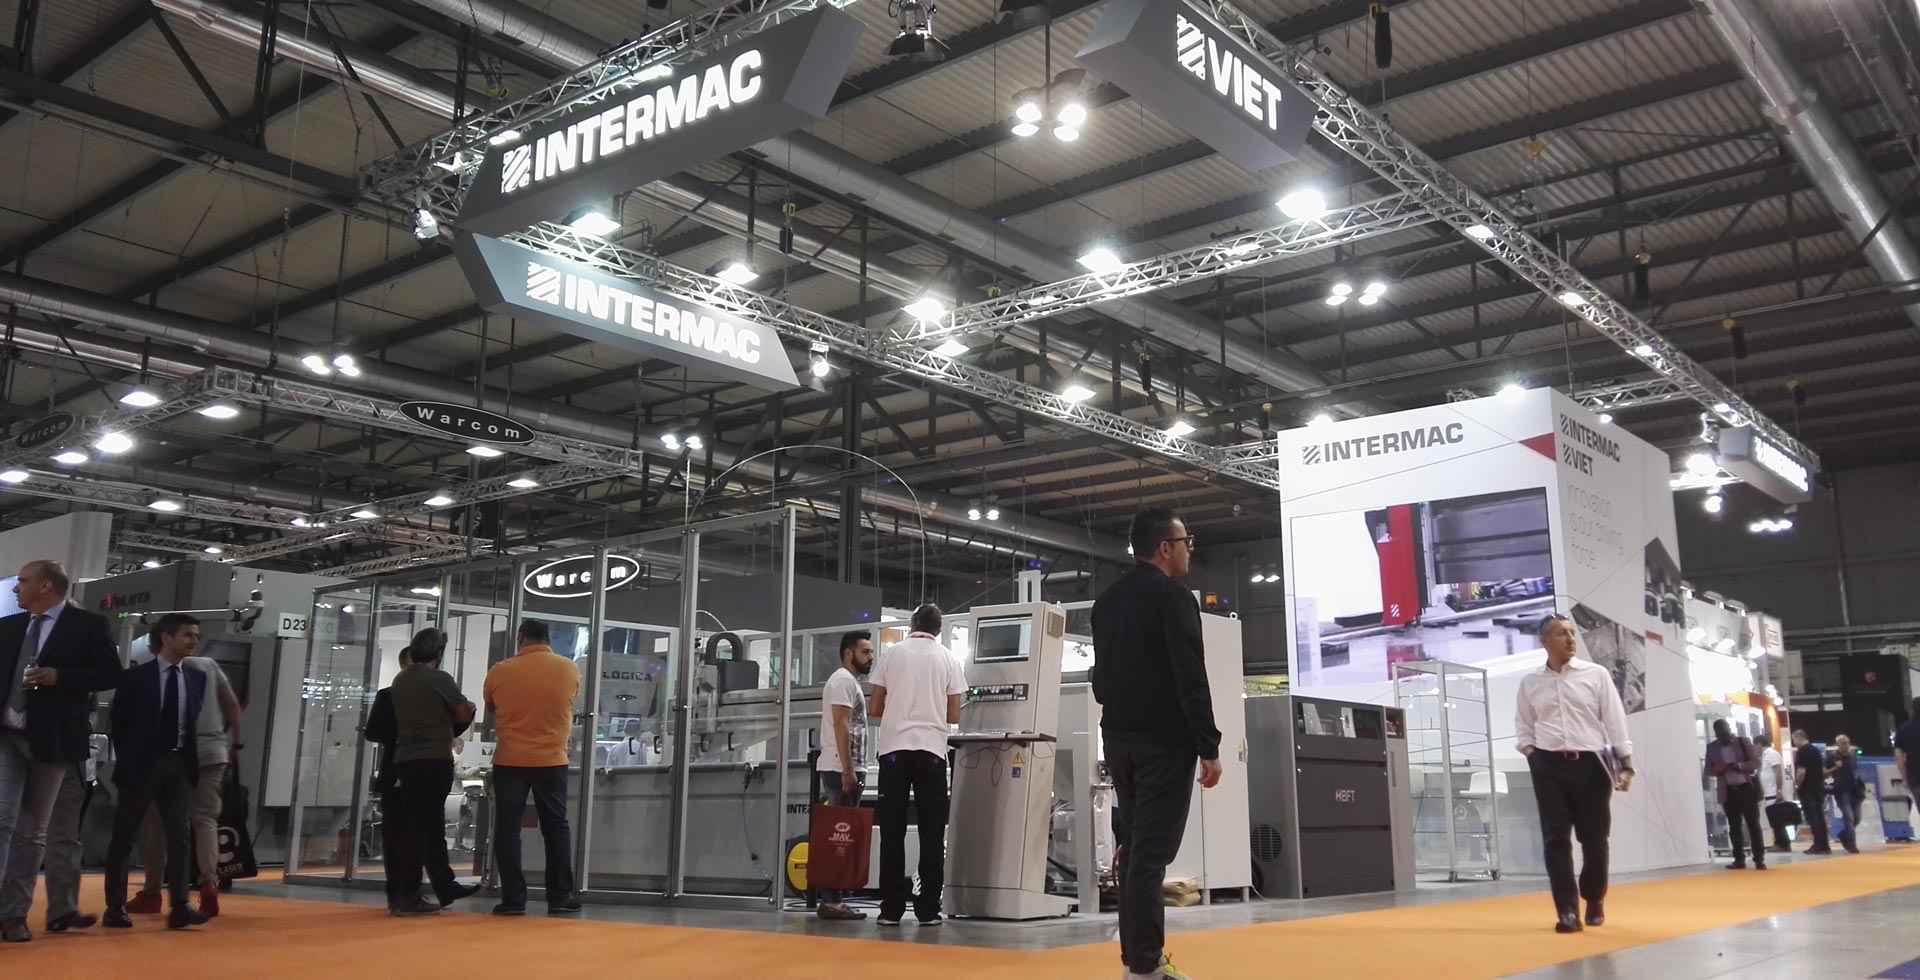 Intermac at Lamiera: great enthusiasm for the versatility of the new Primus 402